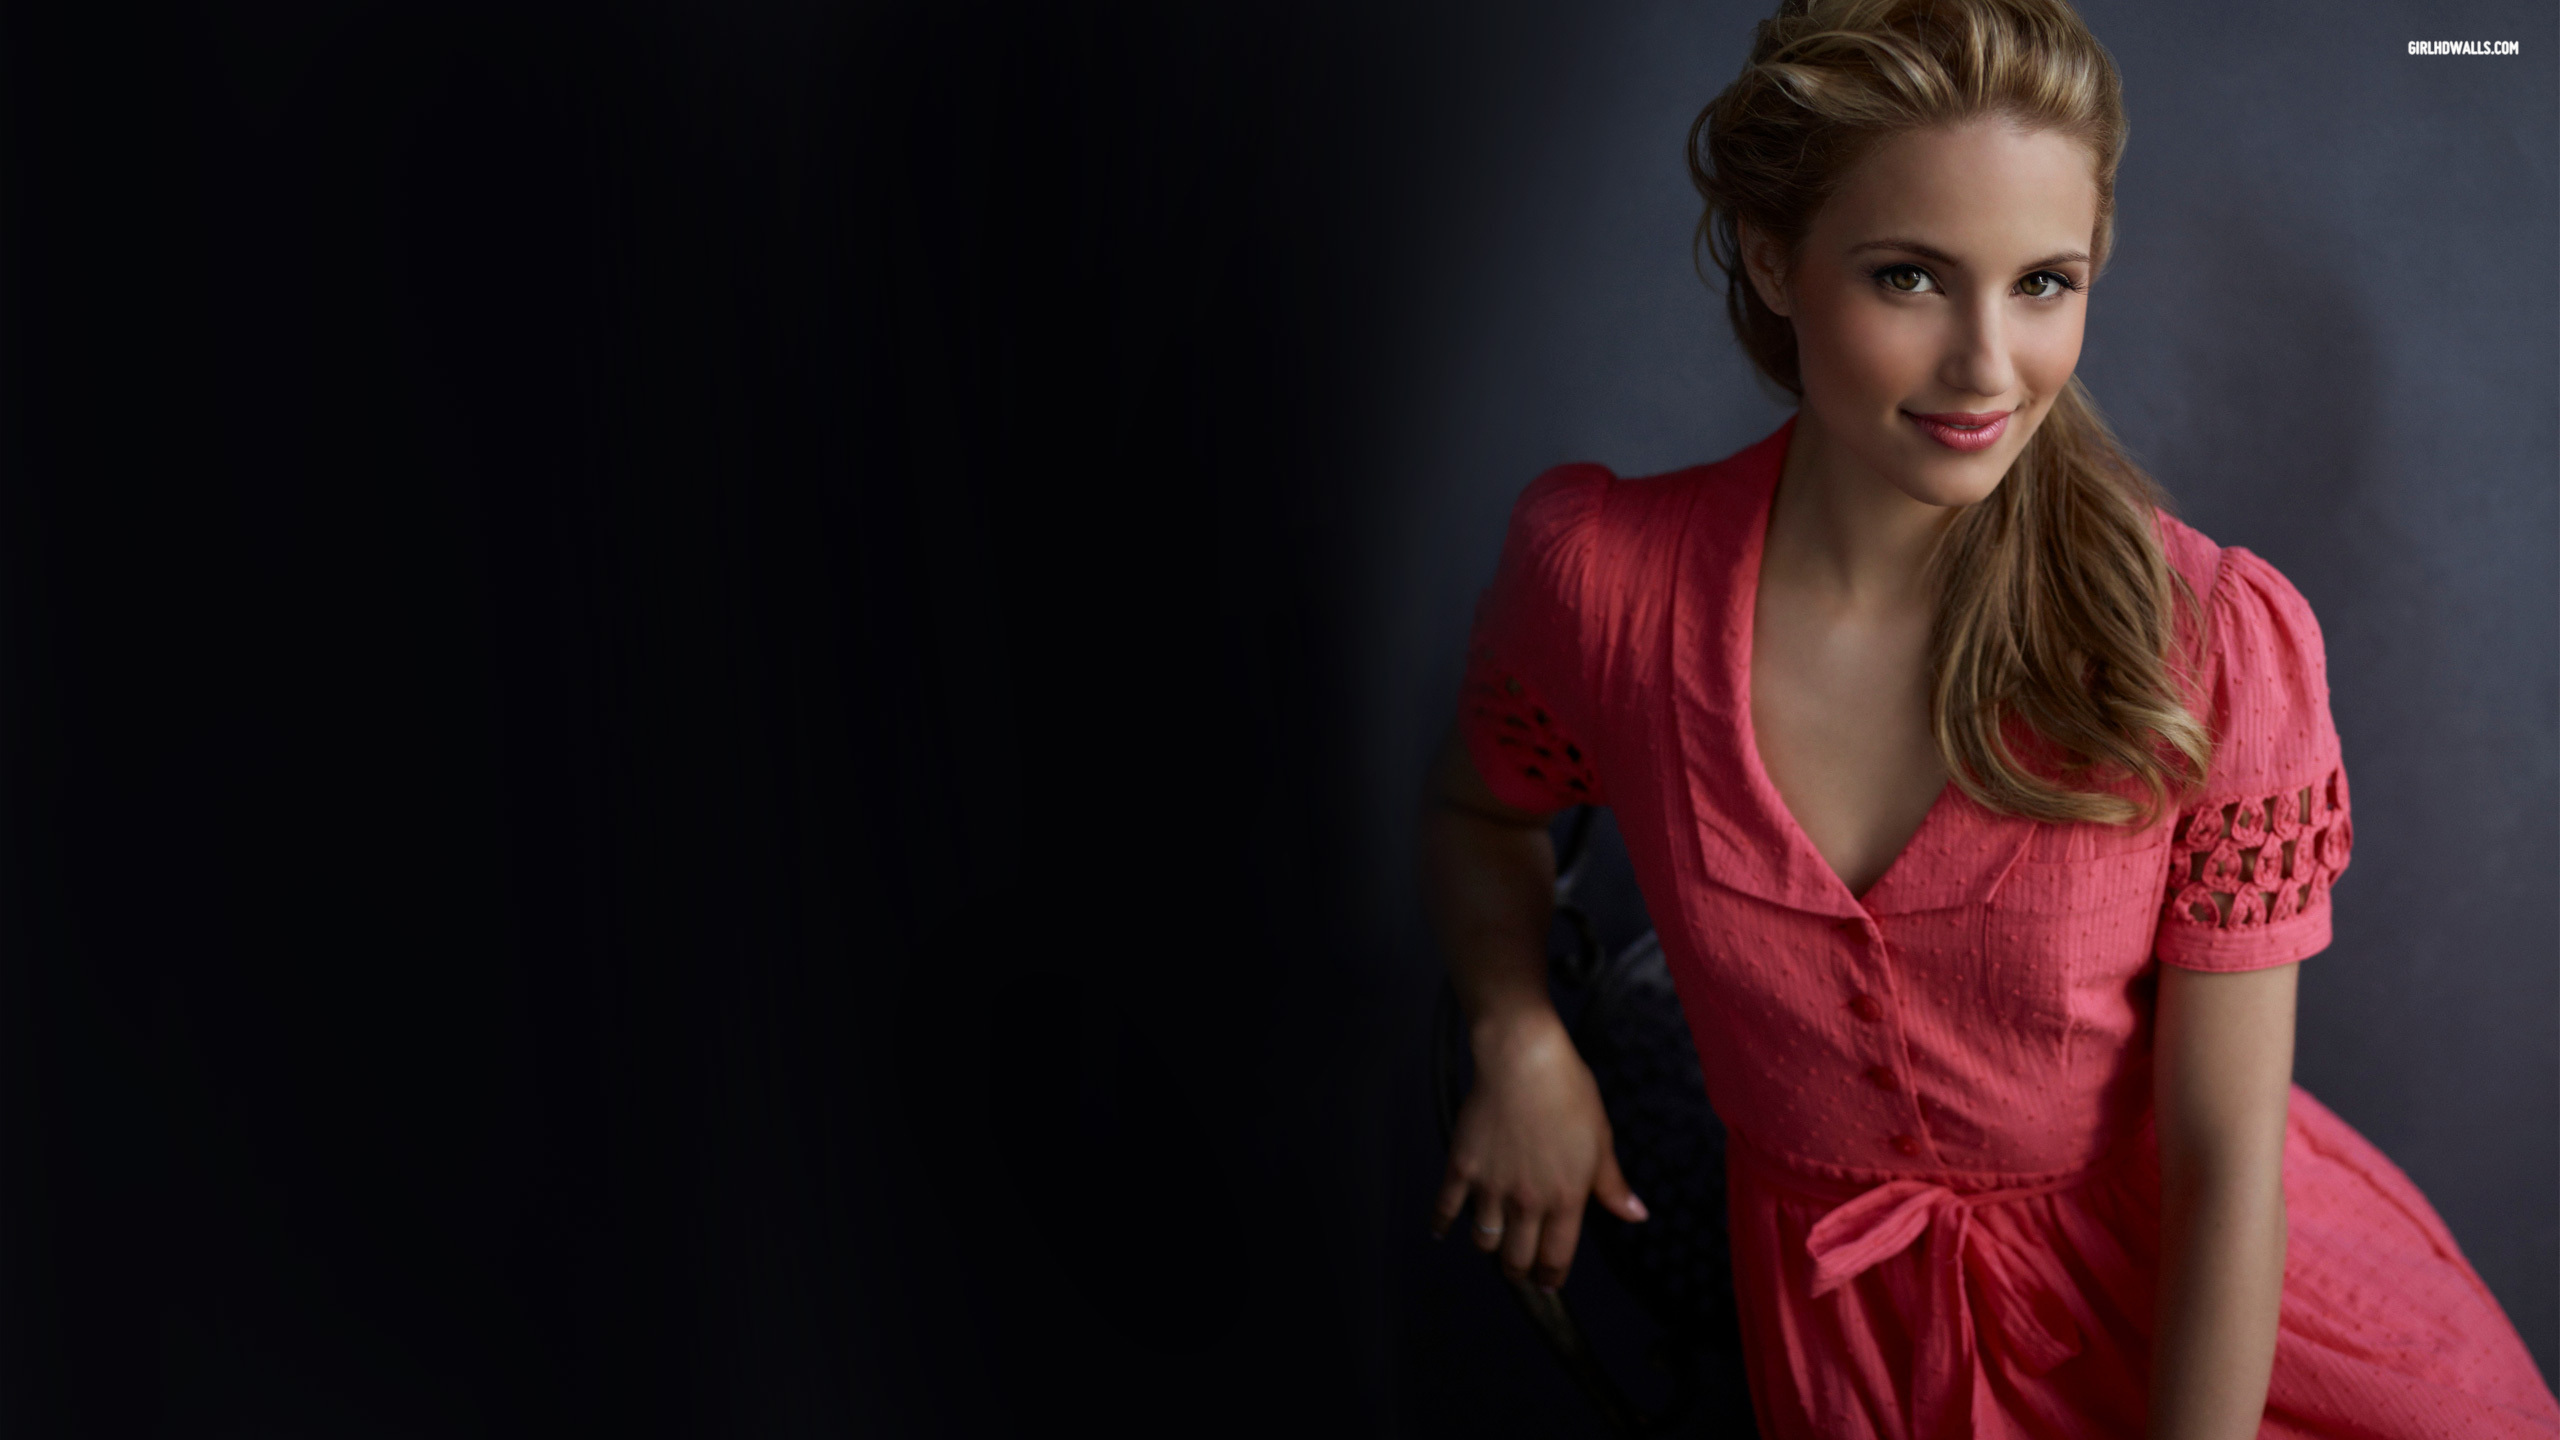 2560x1440 - Dianna Agron Wallpapers 15